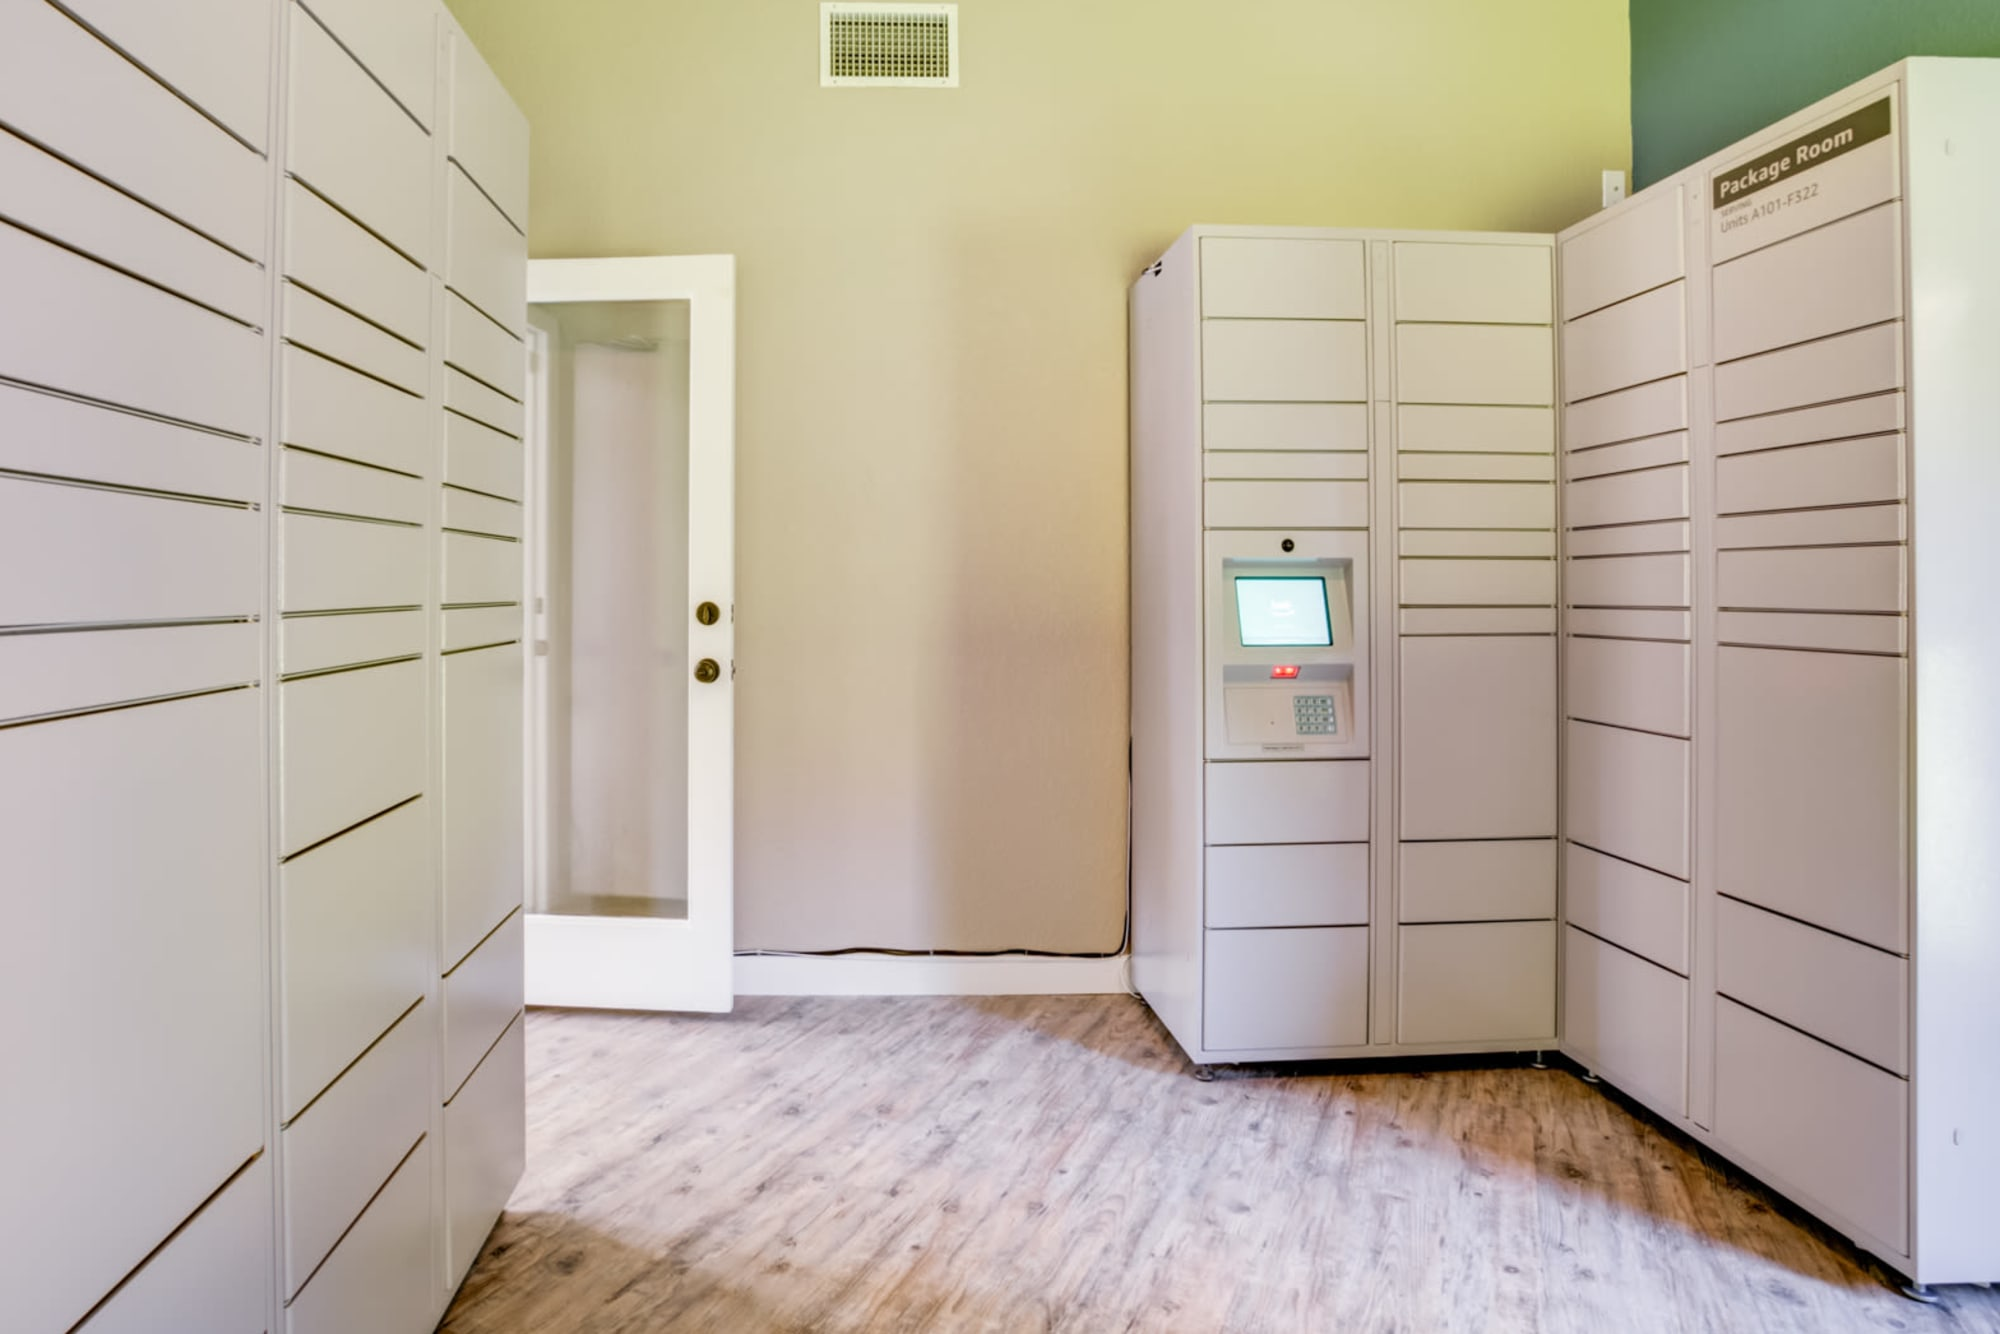 24-hour package lockers at Serramonte Ridge Apartment Homes in Daly City, California